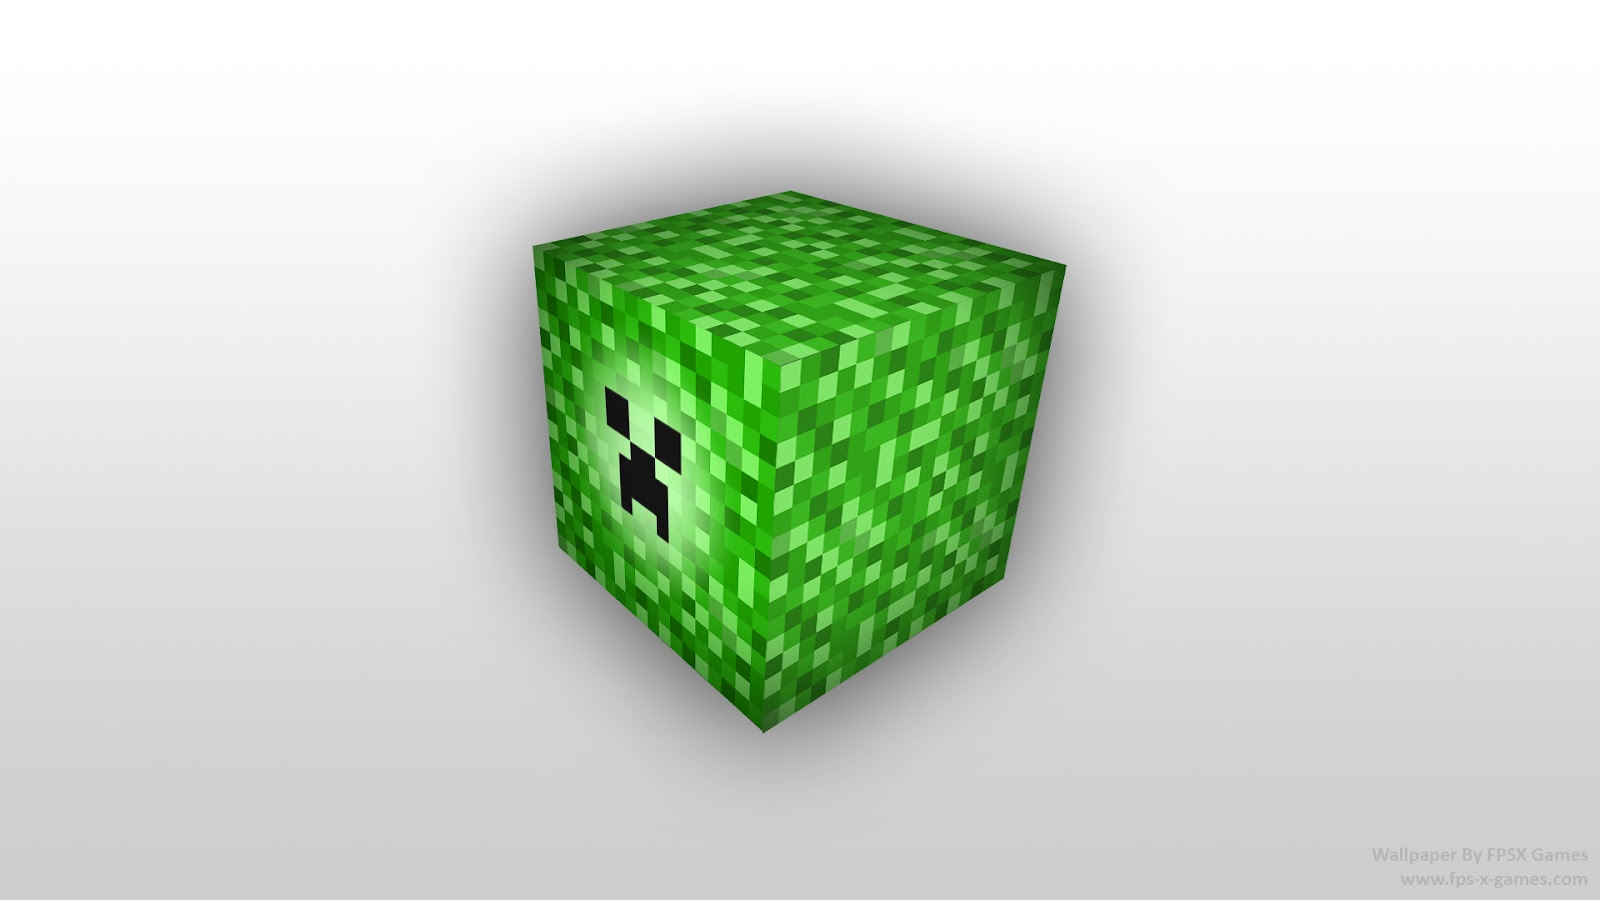 FPSX Games HD Minecraft Wallpapers